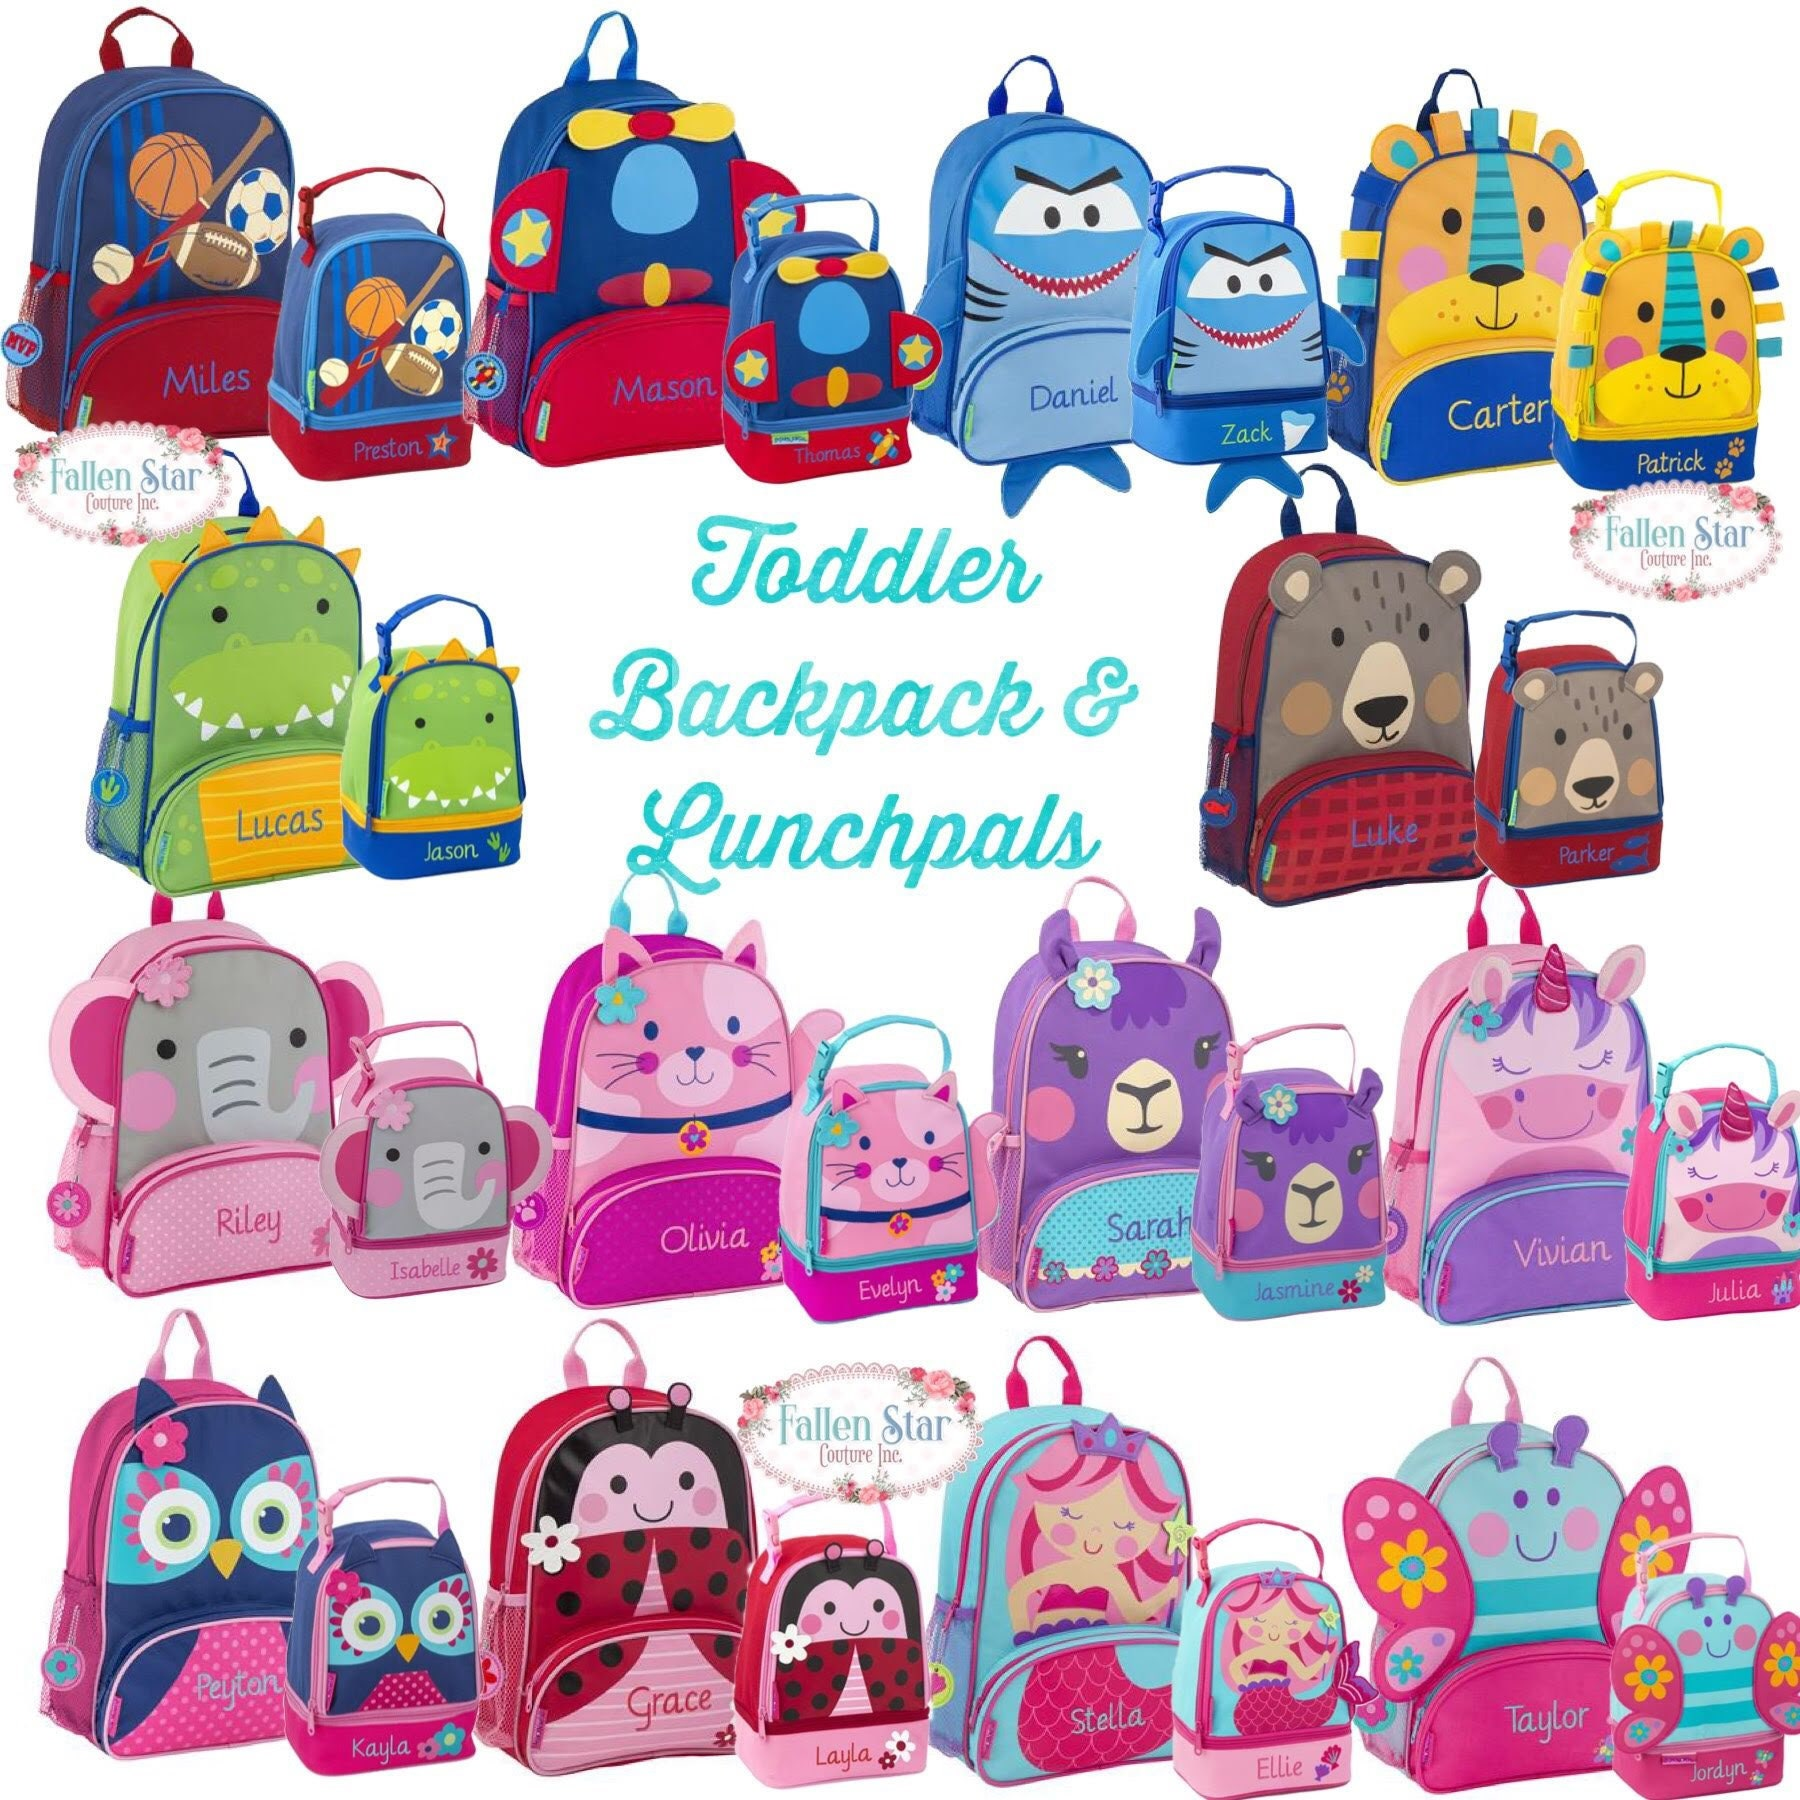 Toddler Backpack lunchbox Preschool Backpack Personalized   Etsy fd90c0be10